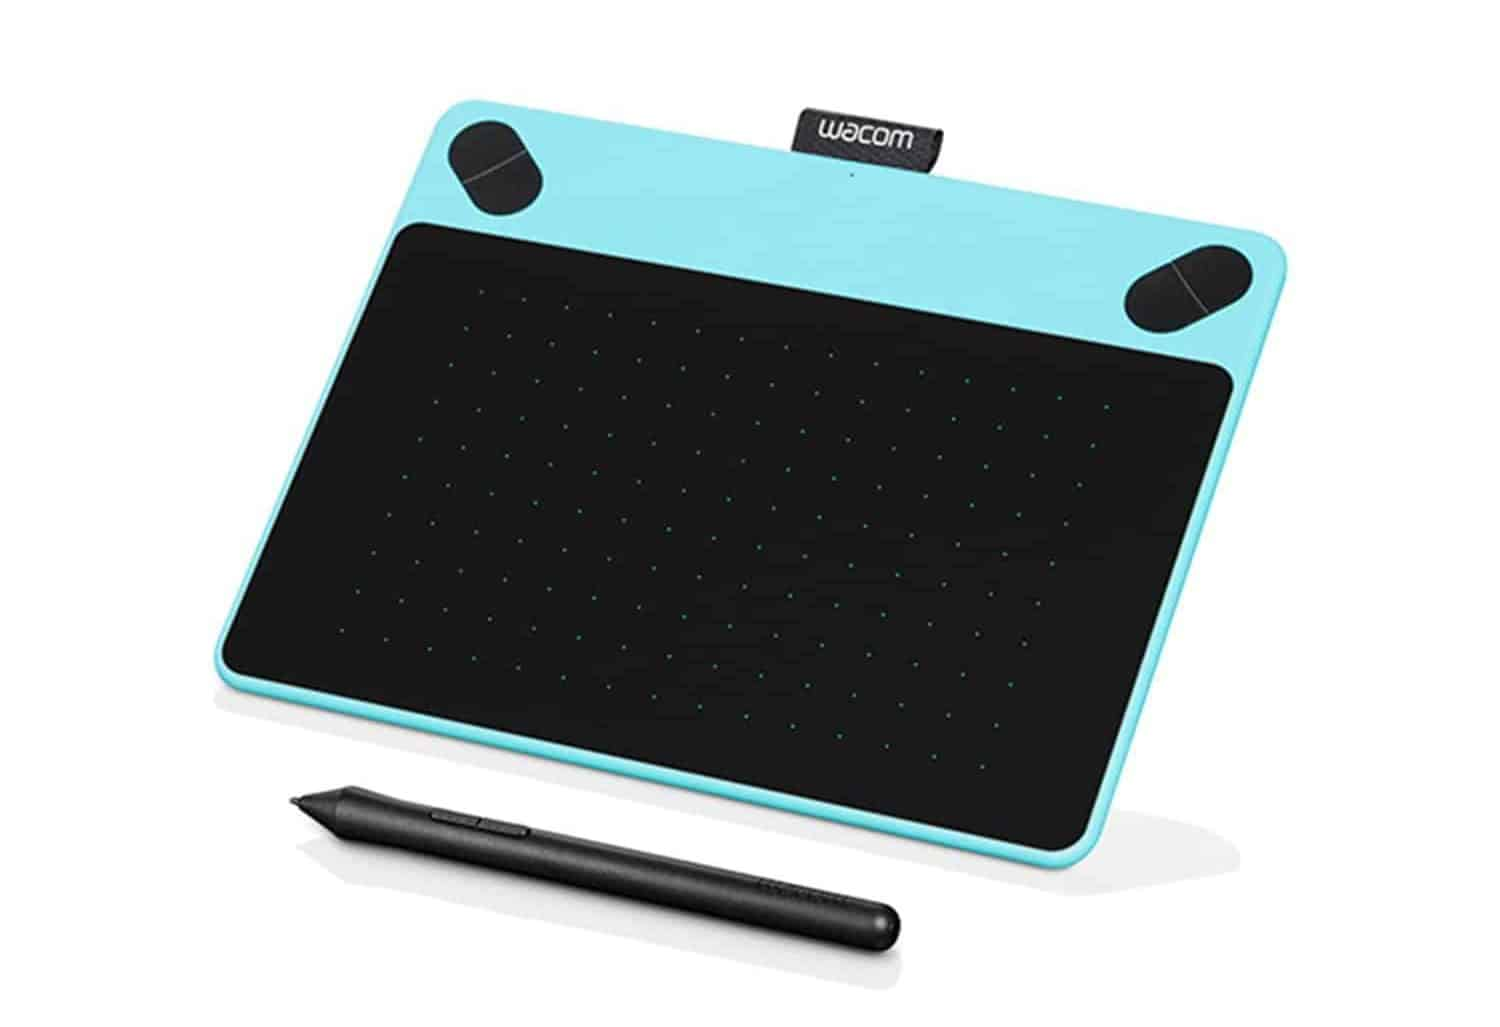 Best Pen Tablets For Graphic Designers